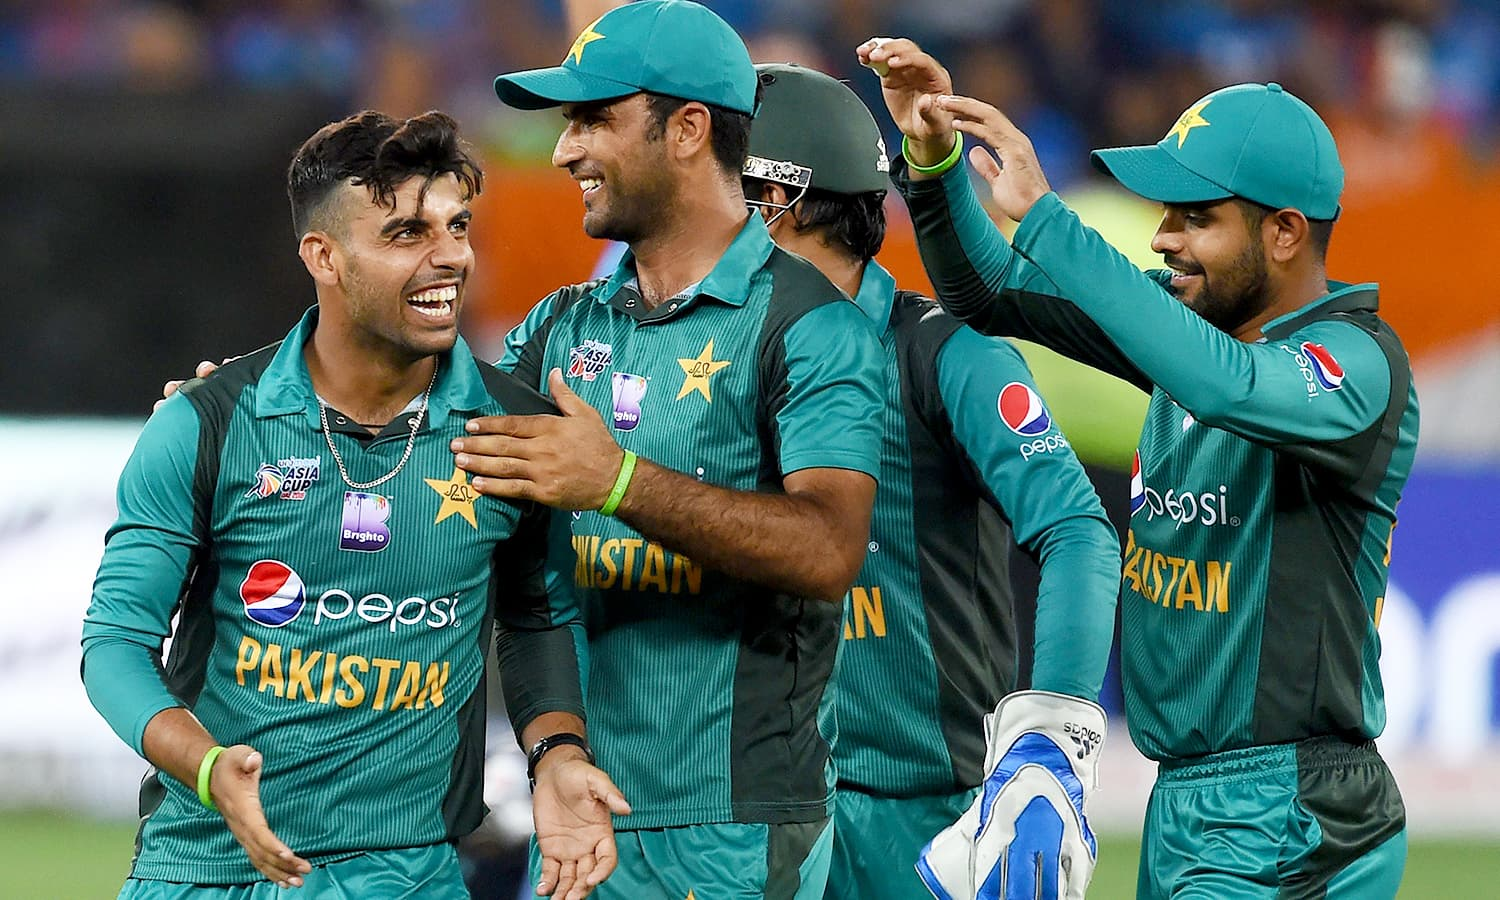 Pakistan cricketer Shadab Khan (L) celebrates with teammates after he dismissed Indian cricket team captain Rohit Sharma. —AFP